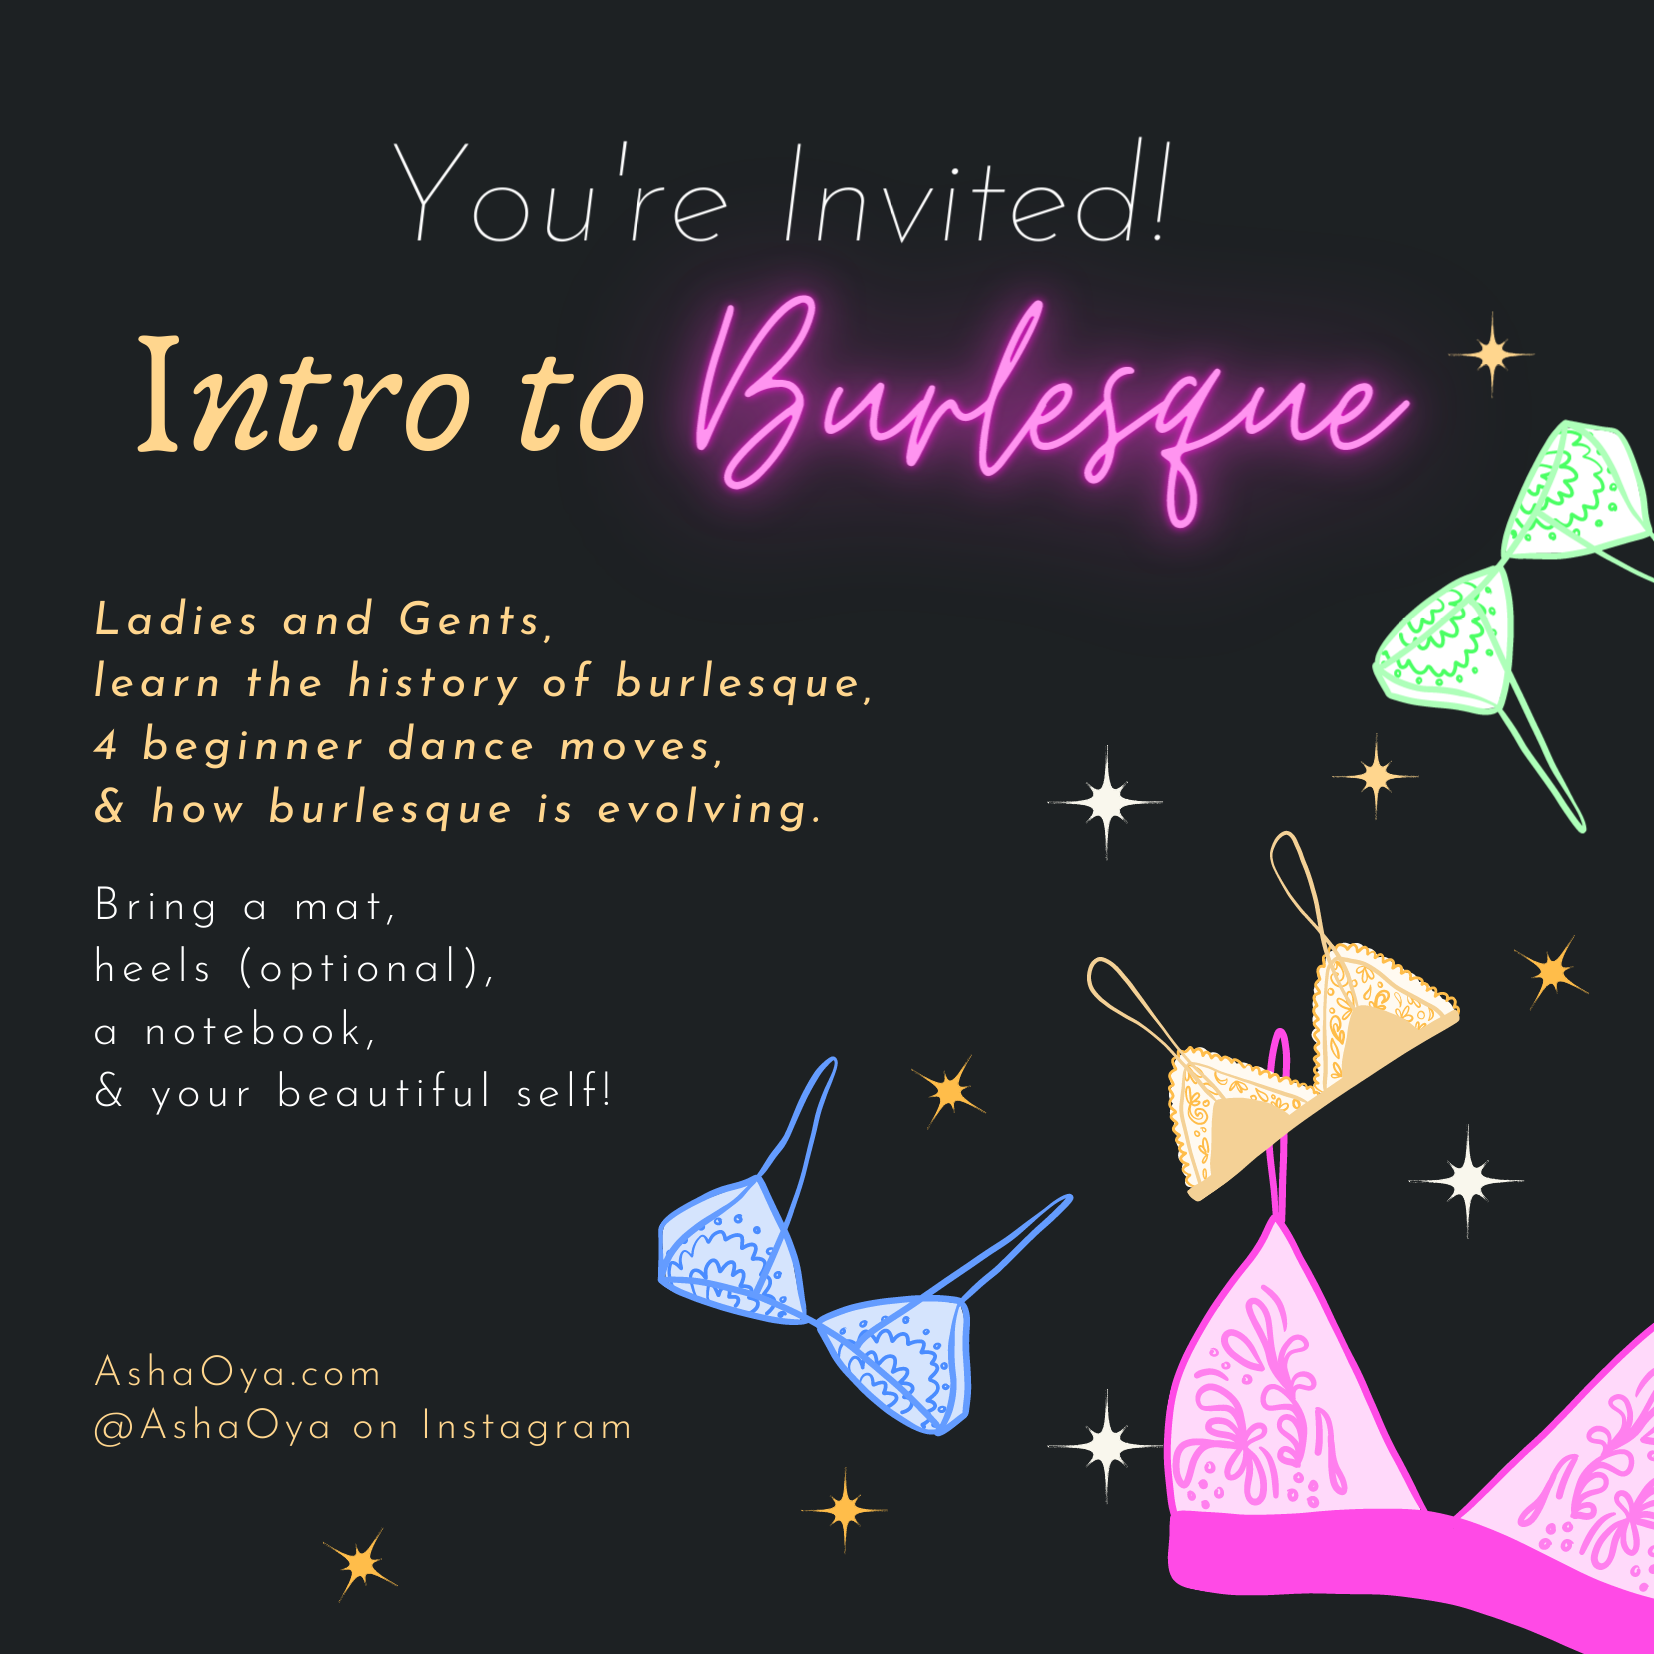 Intro to Burlesque is Back!